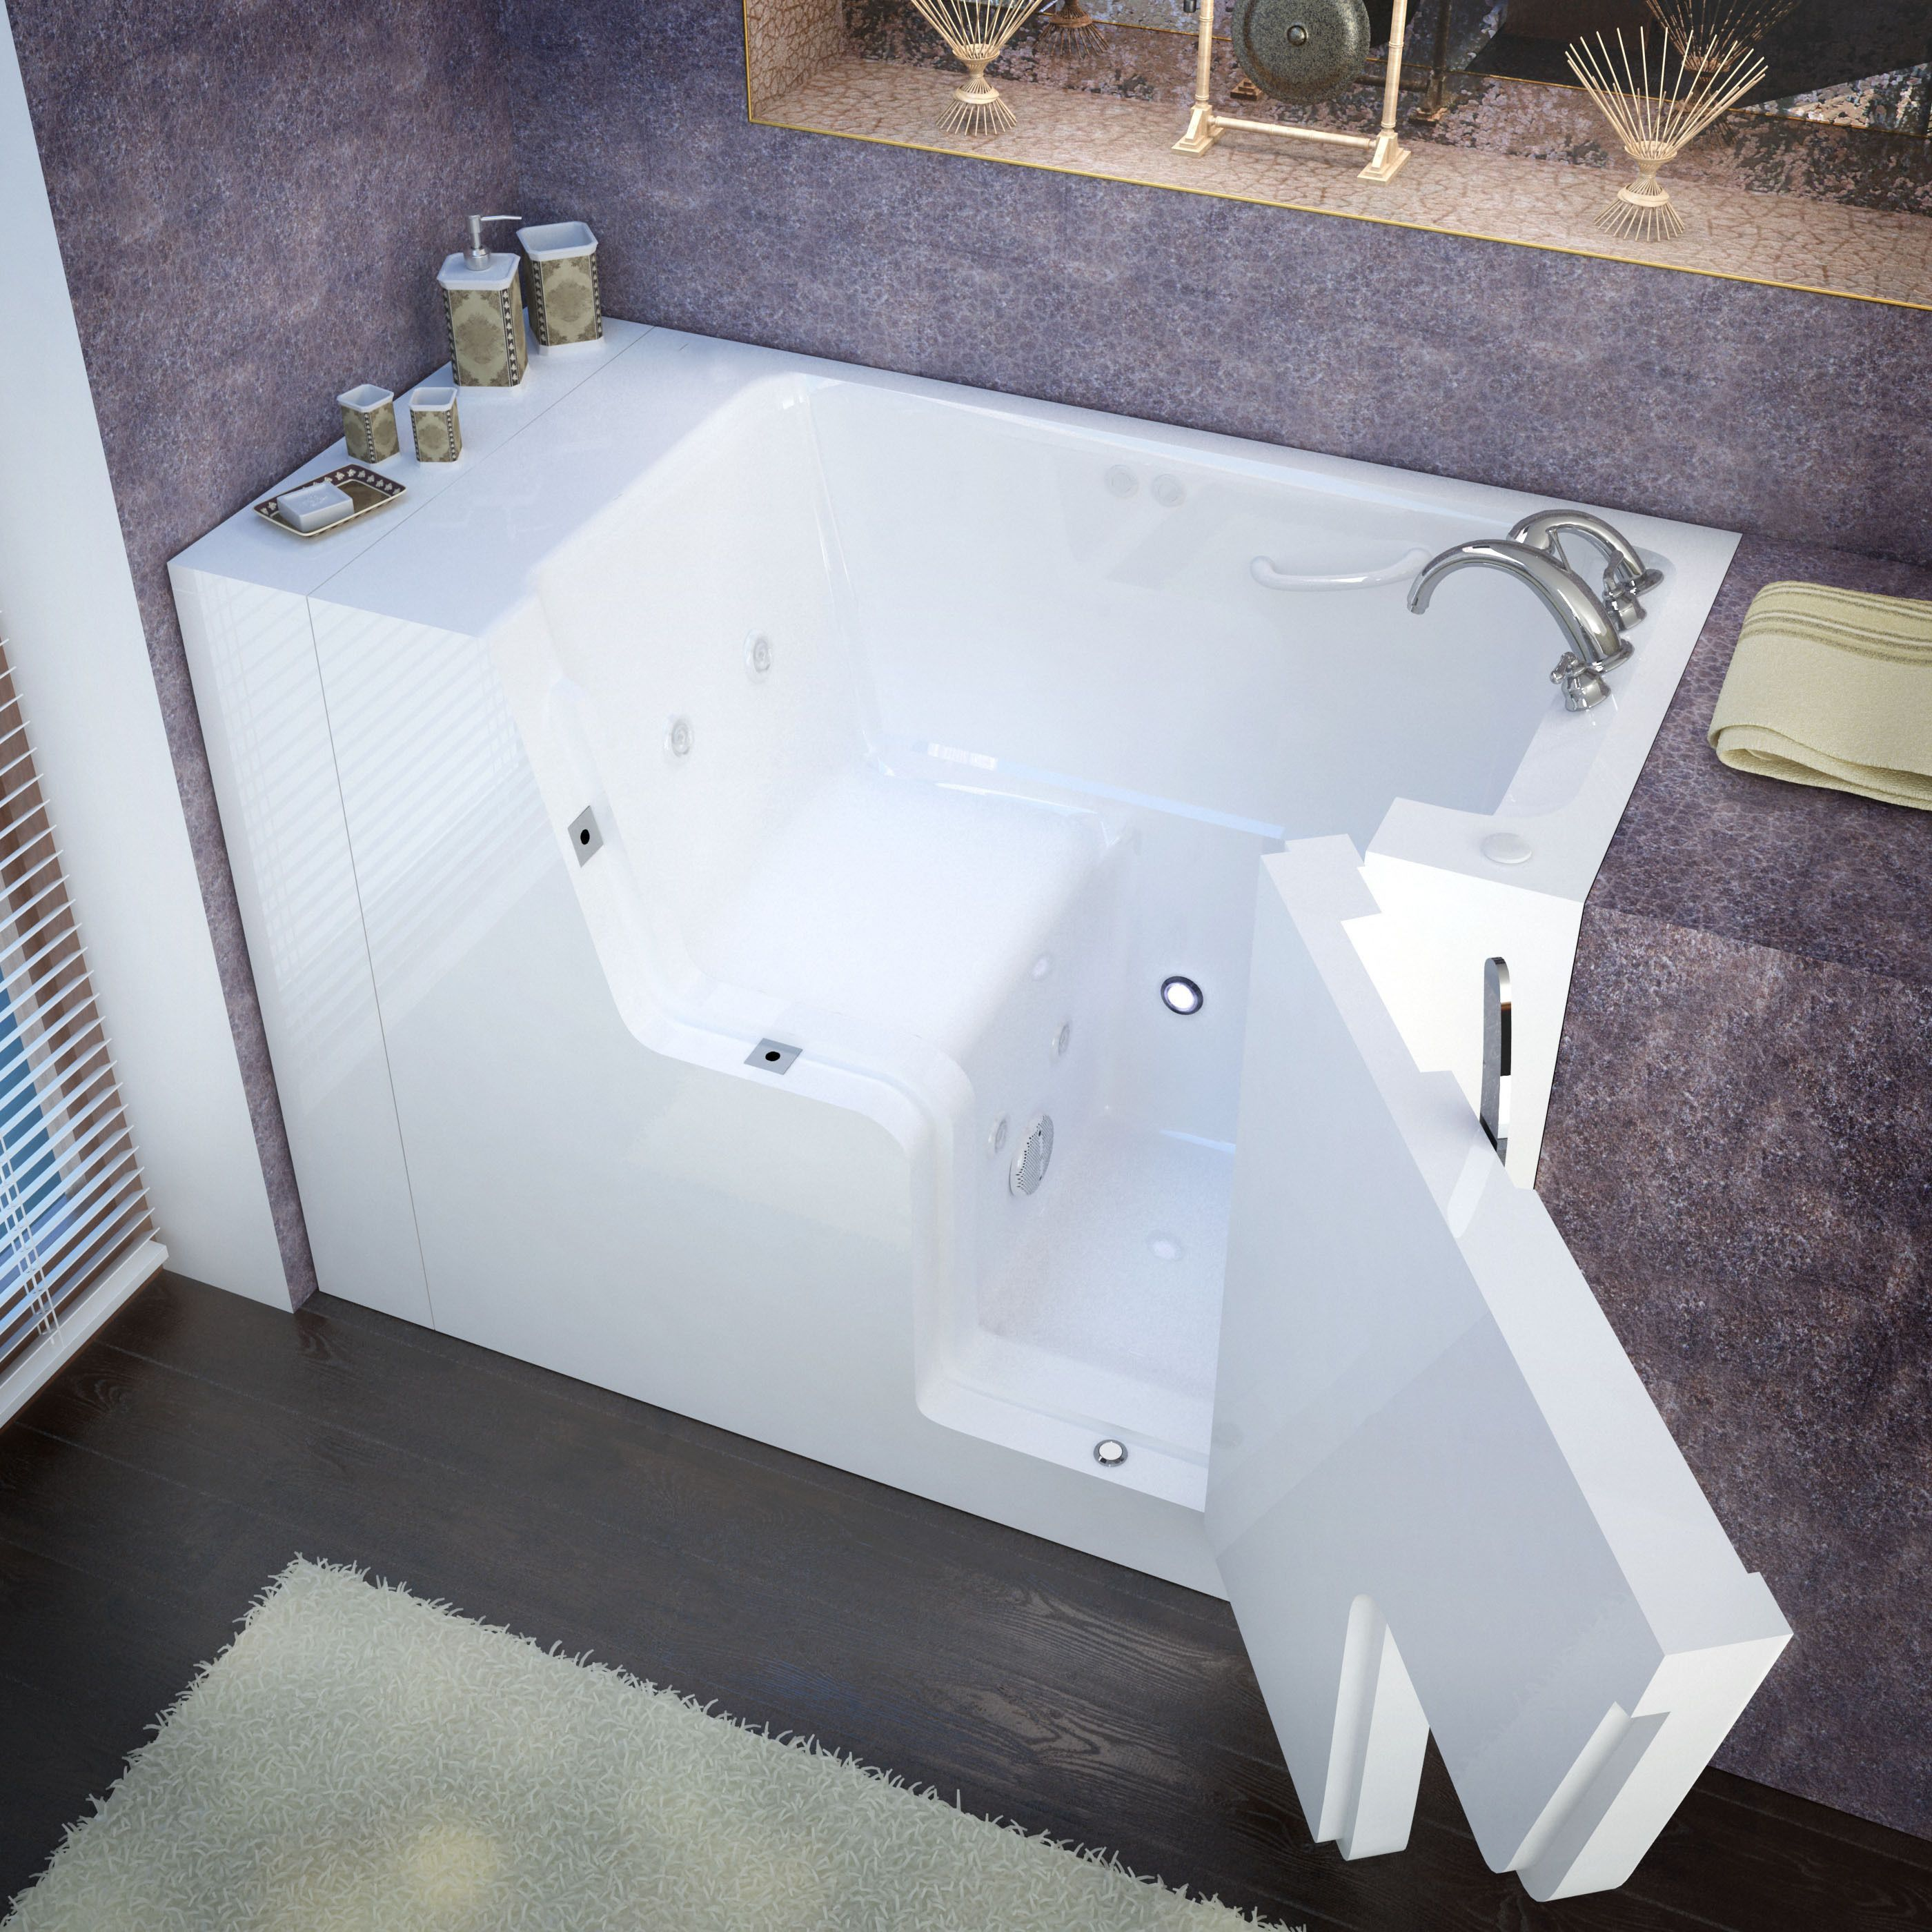 The Mountain Home X Wheelchair Accessible Walkin Tub Is - Bathroom remodel for wheelchair access